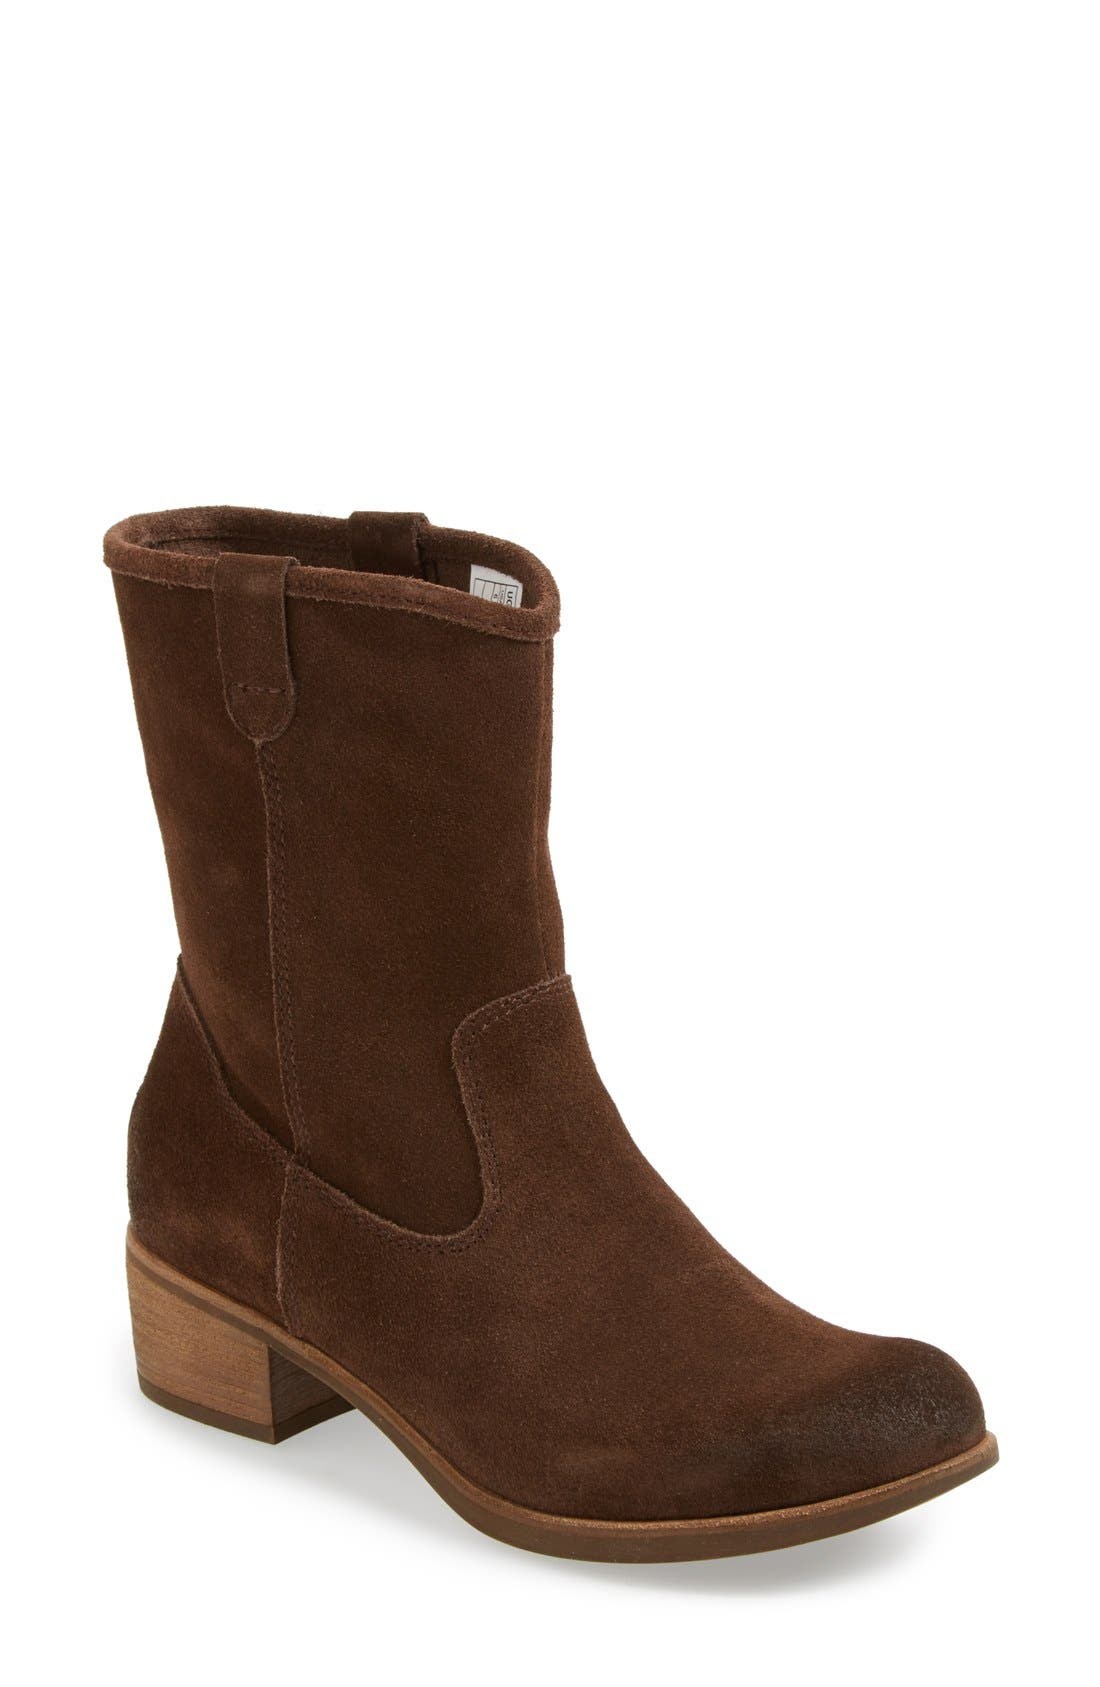 Alternate Image 1 Selected - UGG® Australia 'Rioni' Mid Boot (Women)